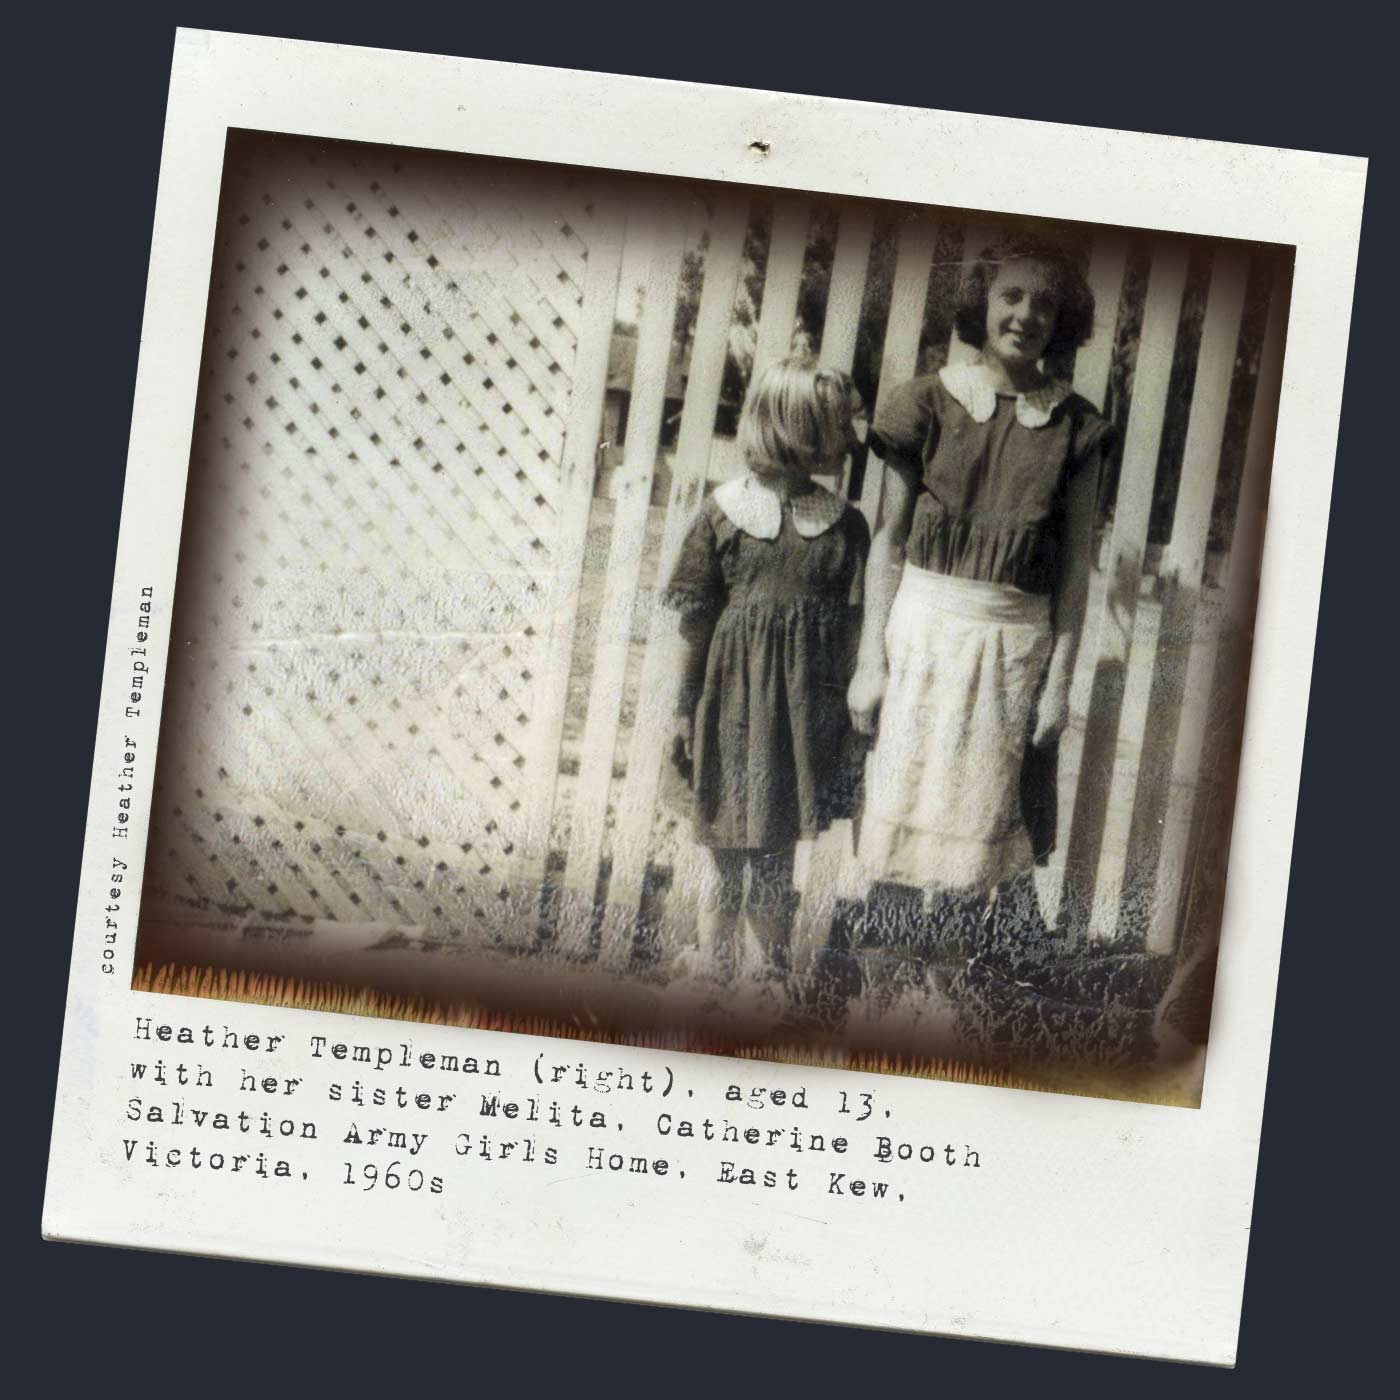 Polaroid photograph showing two girls standing in front of a white lattice fence. The smaller girl, on the left, turns her head to look at the older girl. Tyepwritten text below reads 'Heather Templeman (right), aged 13, with her sister Melita, Catherine Booth Salvation Army Girls Home, East Kew, Victoria, 1960s'. 'Courtesy Heather Templeman' is typed along the left side. - click to view larger image